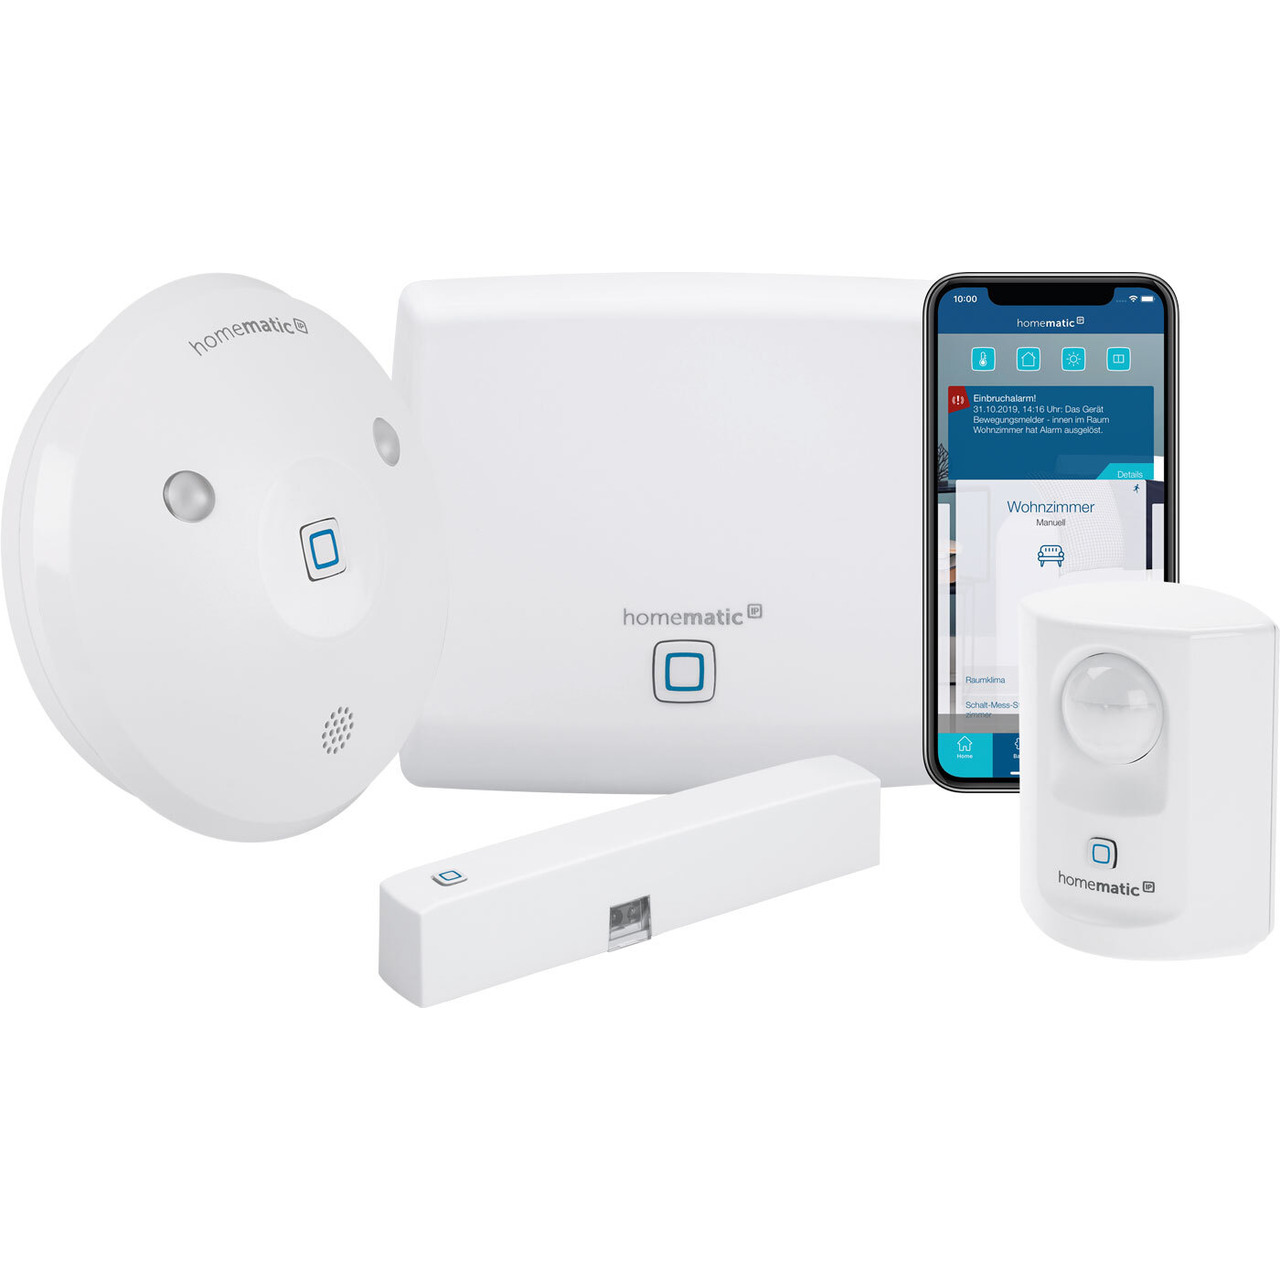 Homematic IP Starter Set Alarm mit Access Point- Alarmsirene- Tür-Fensterkontakt- Bewegungsmelder